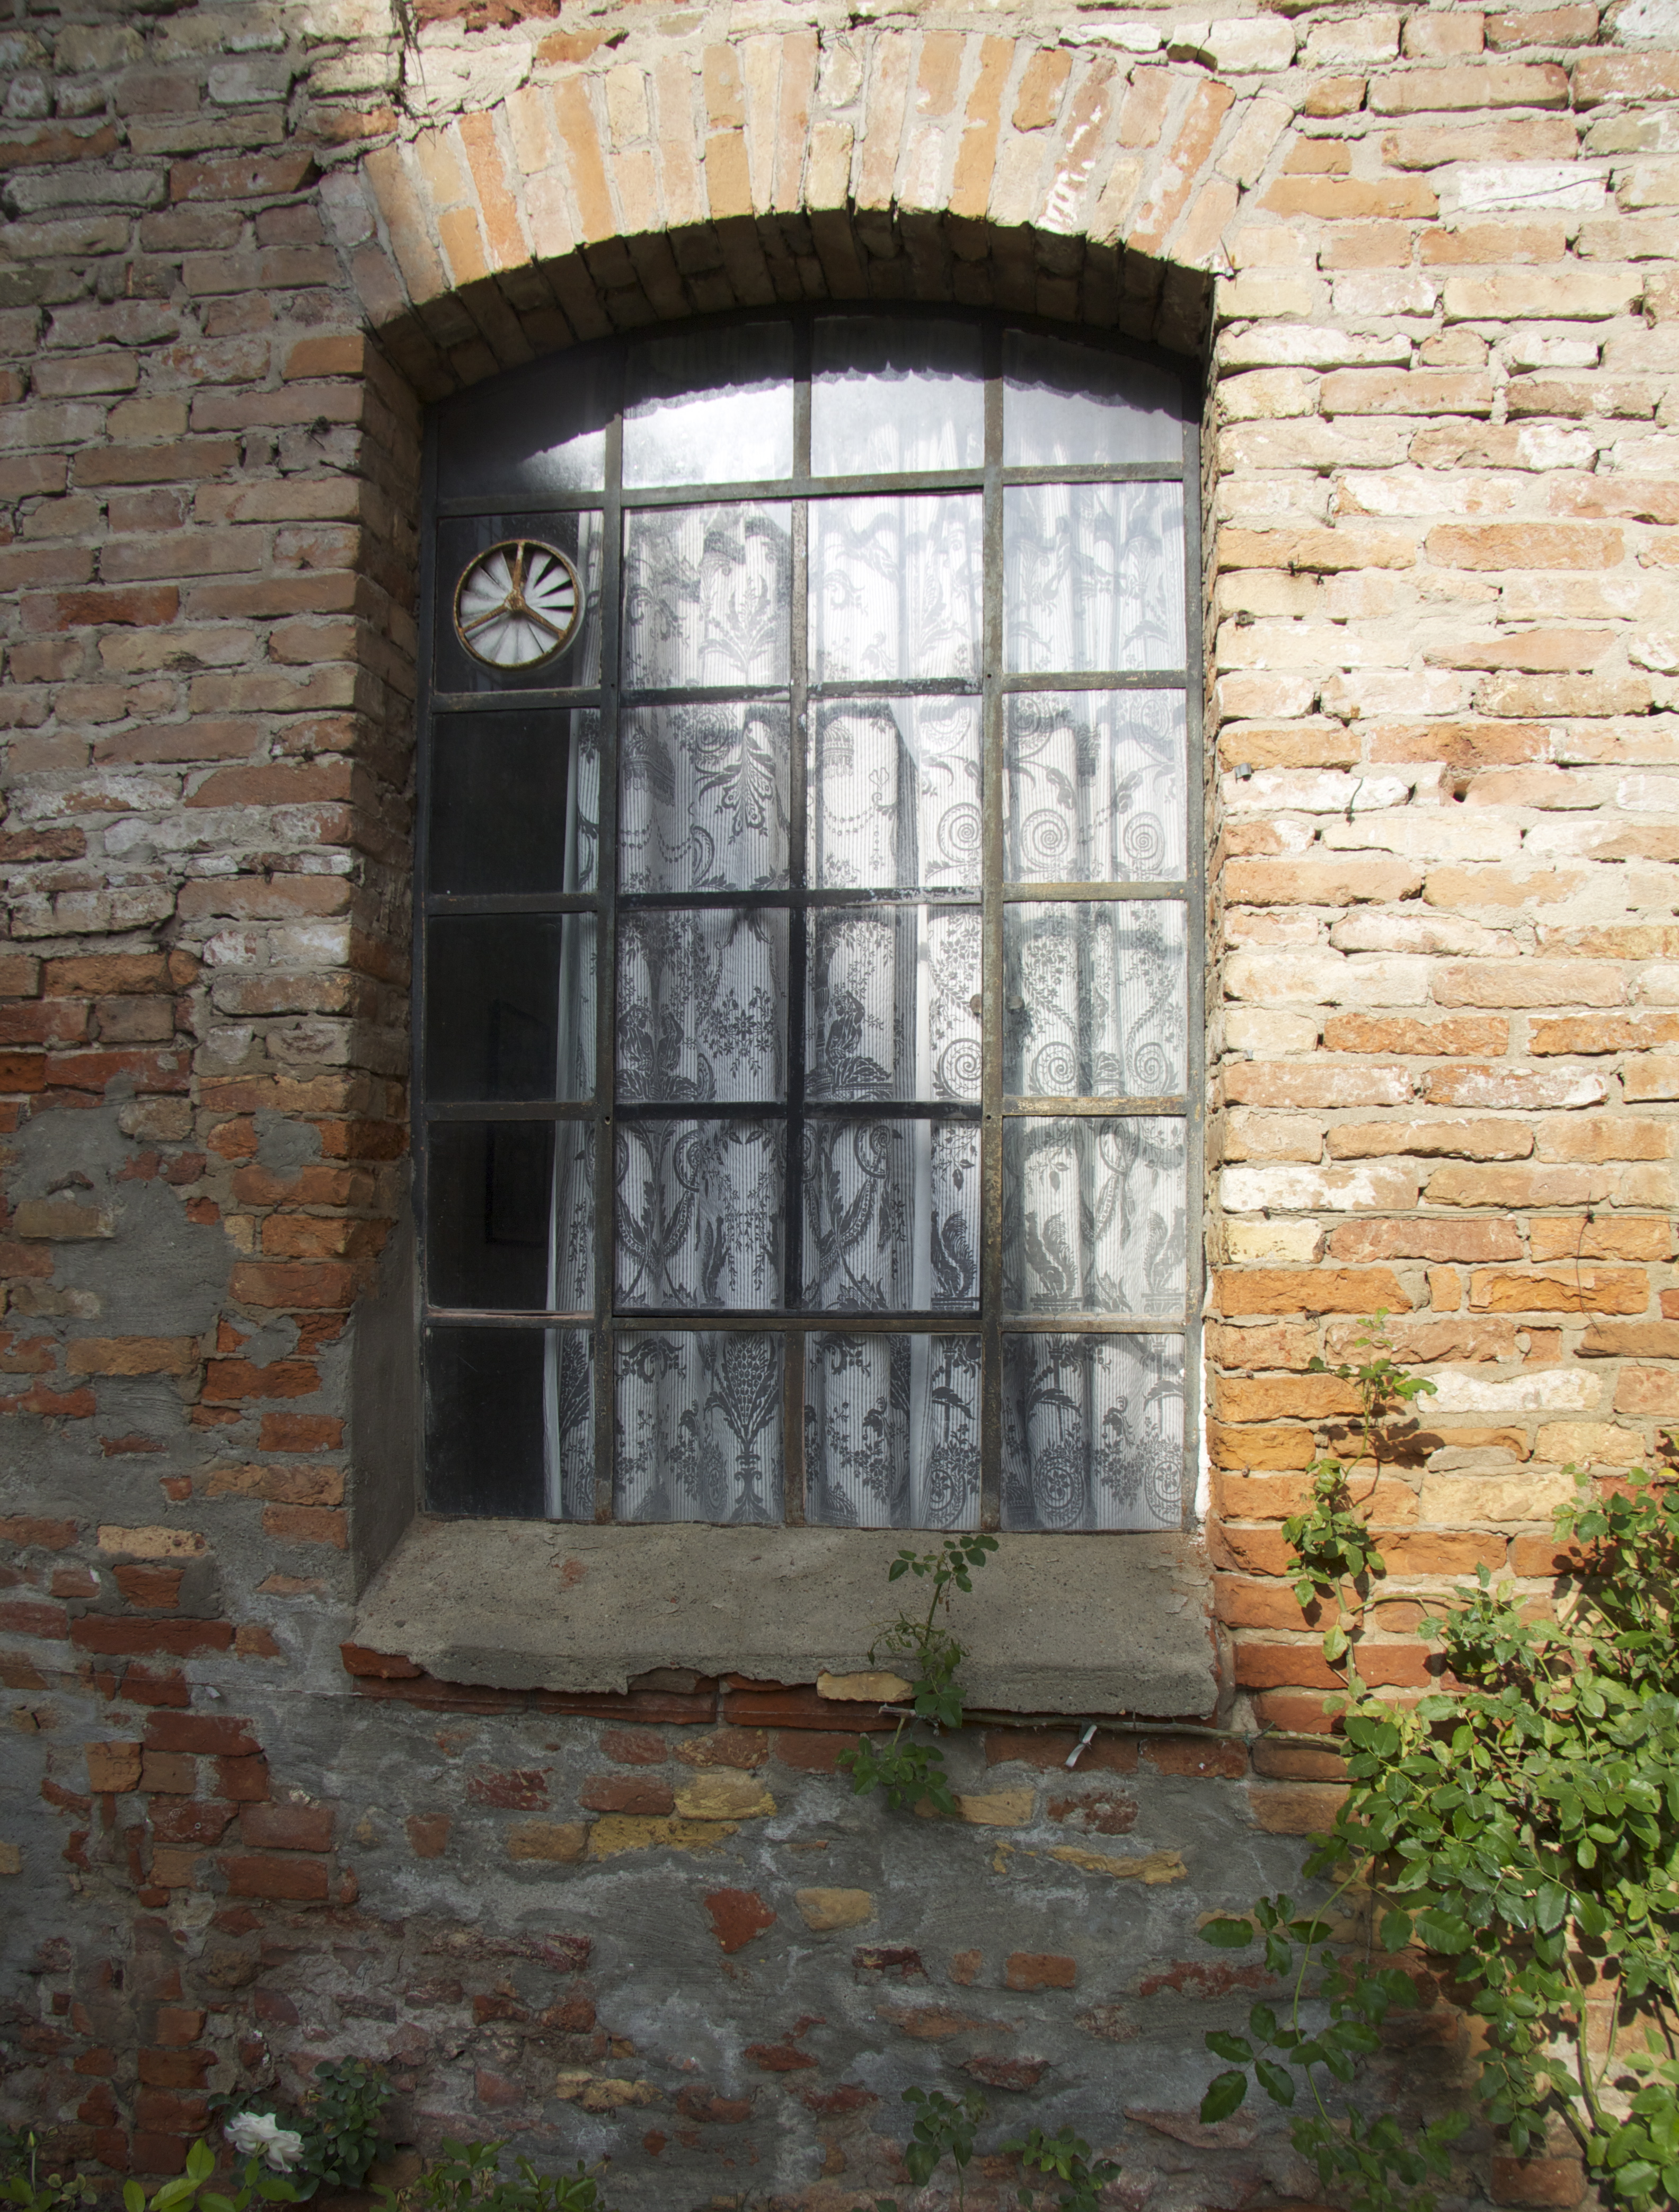 This Wall U2013 With Spare Arching Black Iron Window Frames Dressed In Grey  Toile De Jouy Style Fabric U2013 Is Clothed In Bright Yellow Roses All Summer.